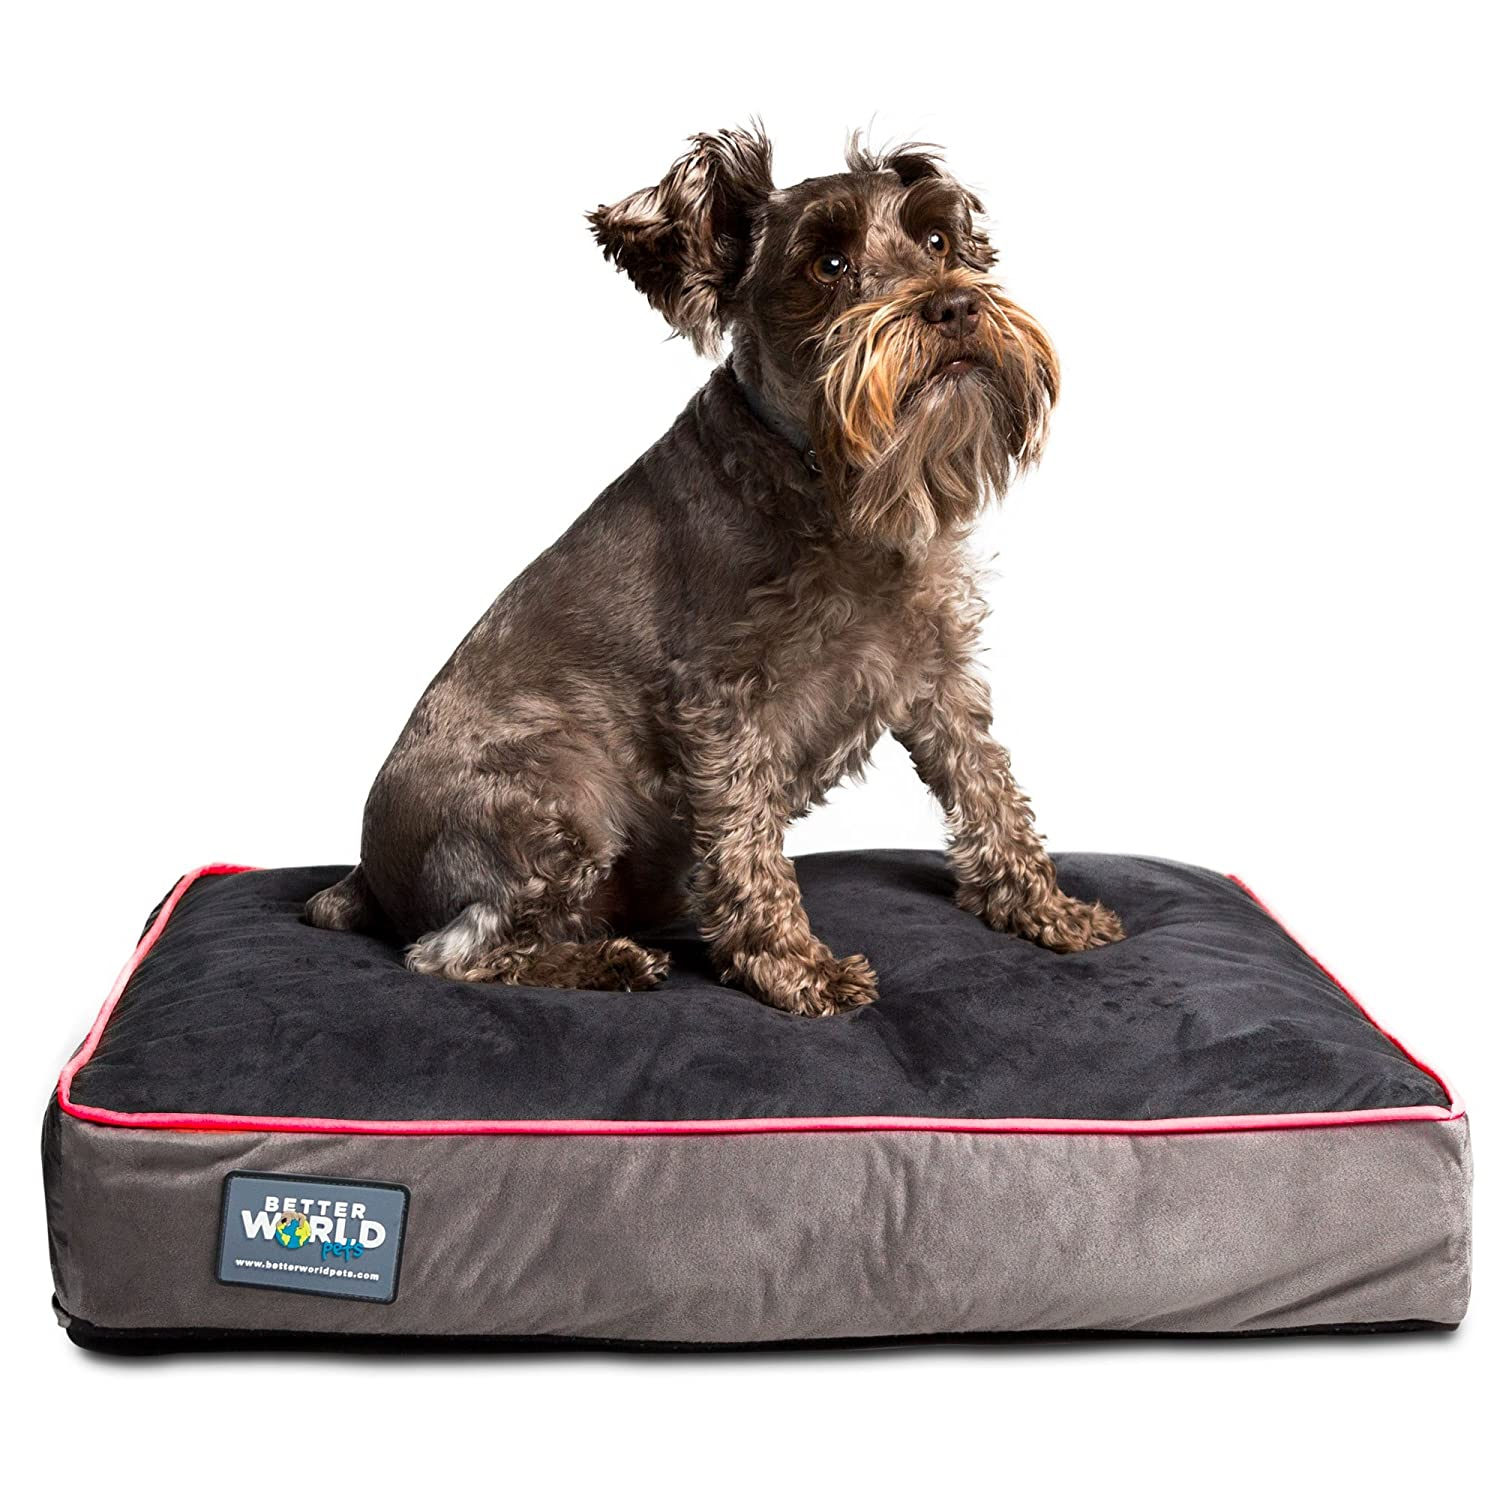 Better world pets - first-quality orthopedic dog bed